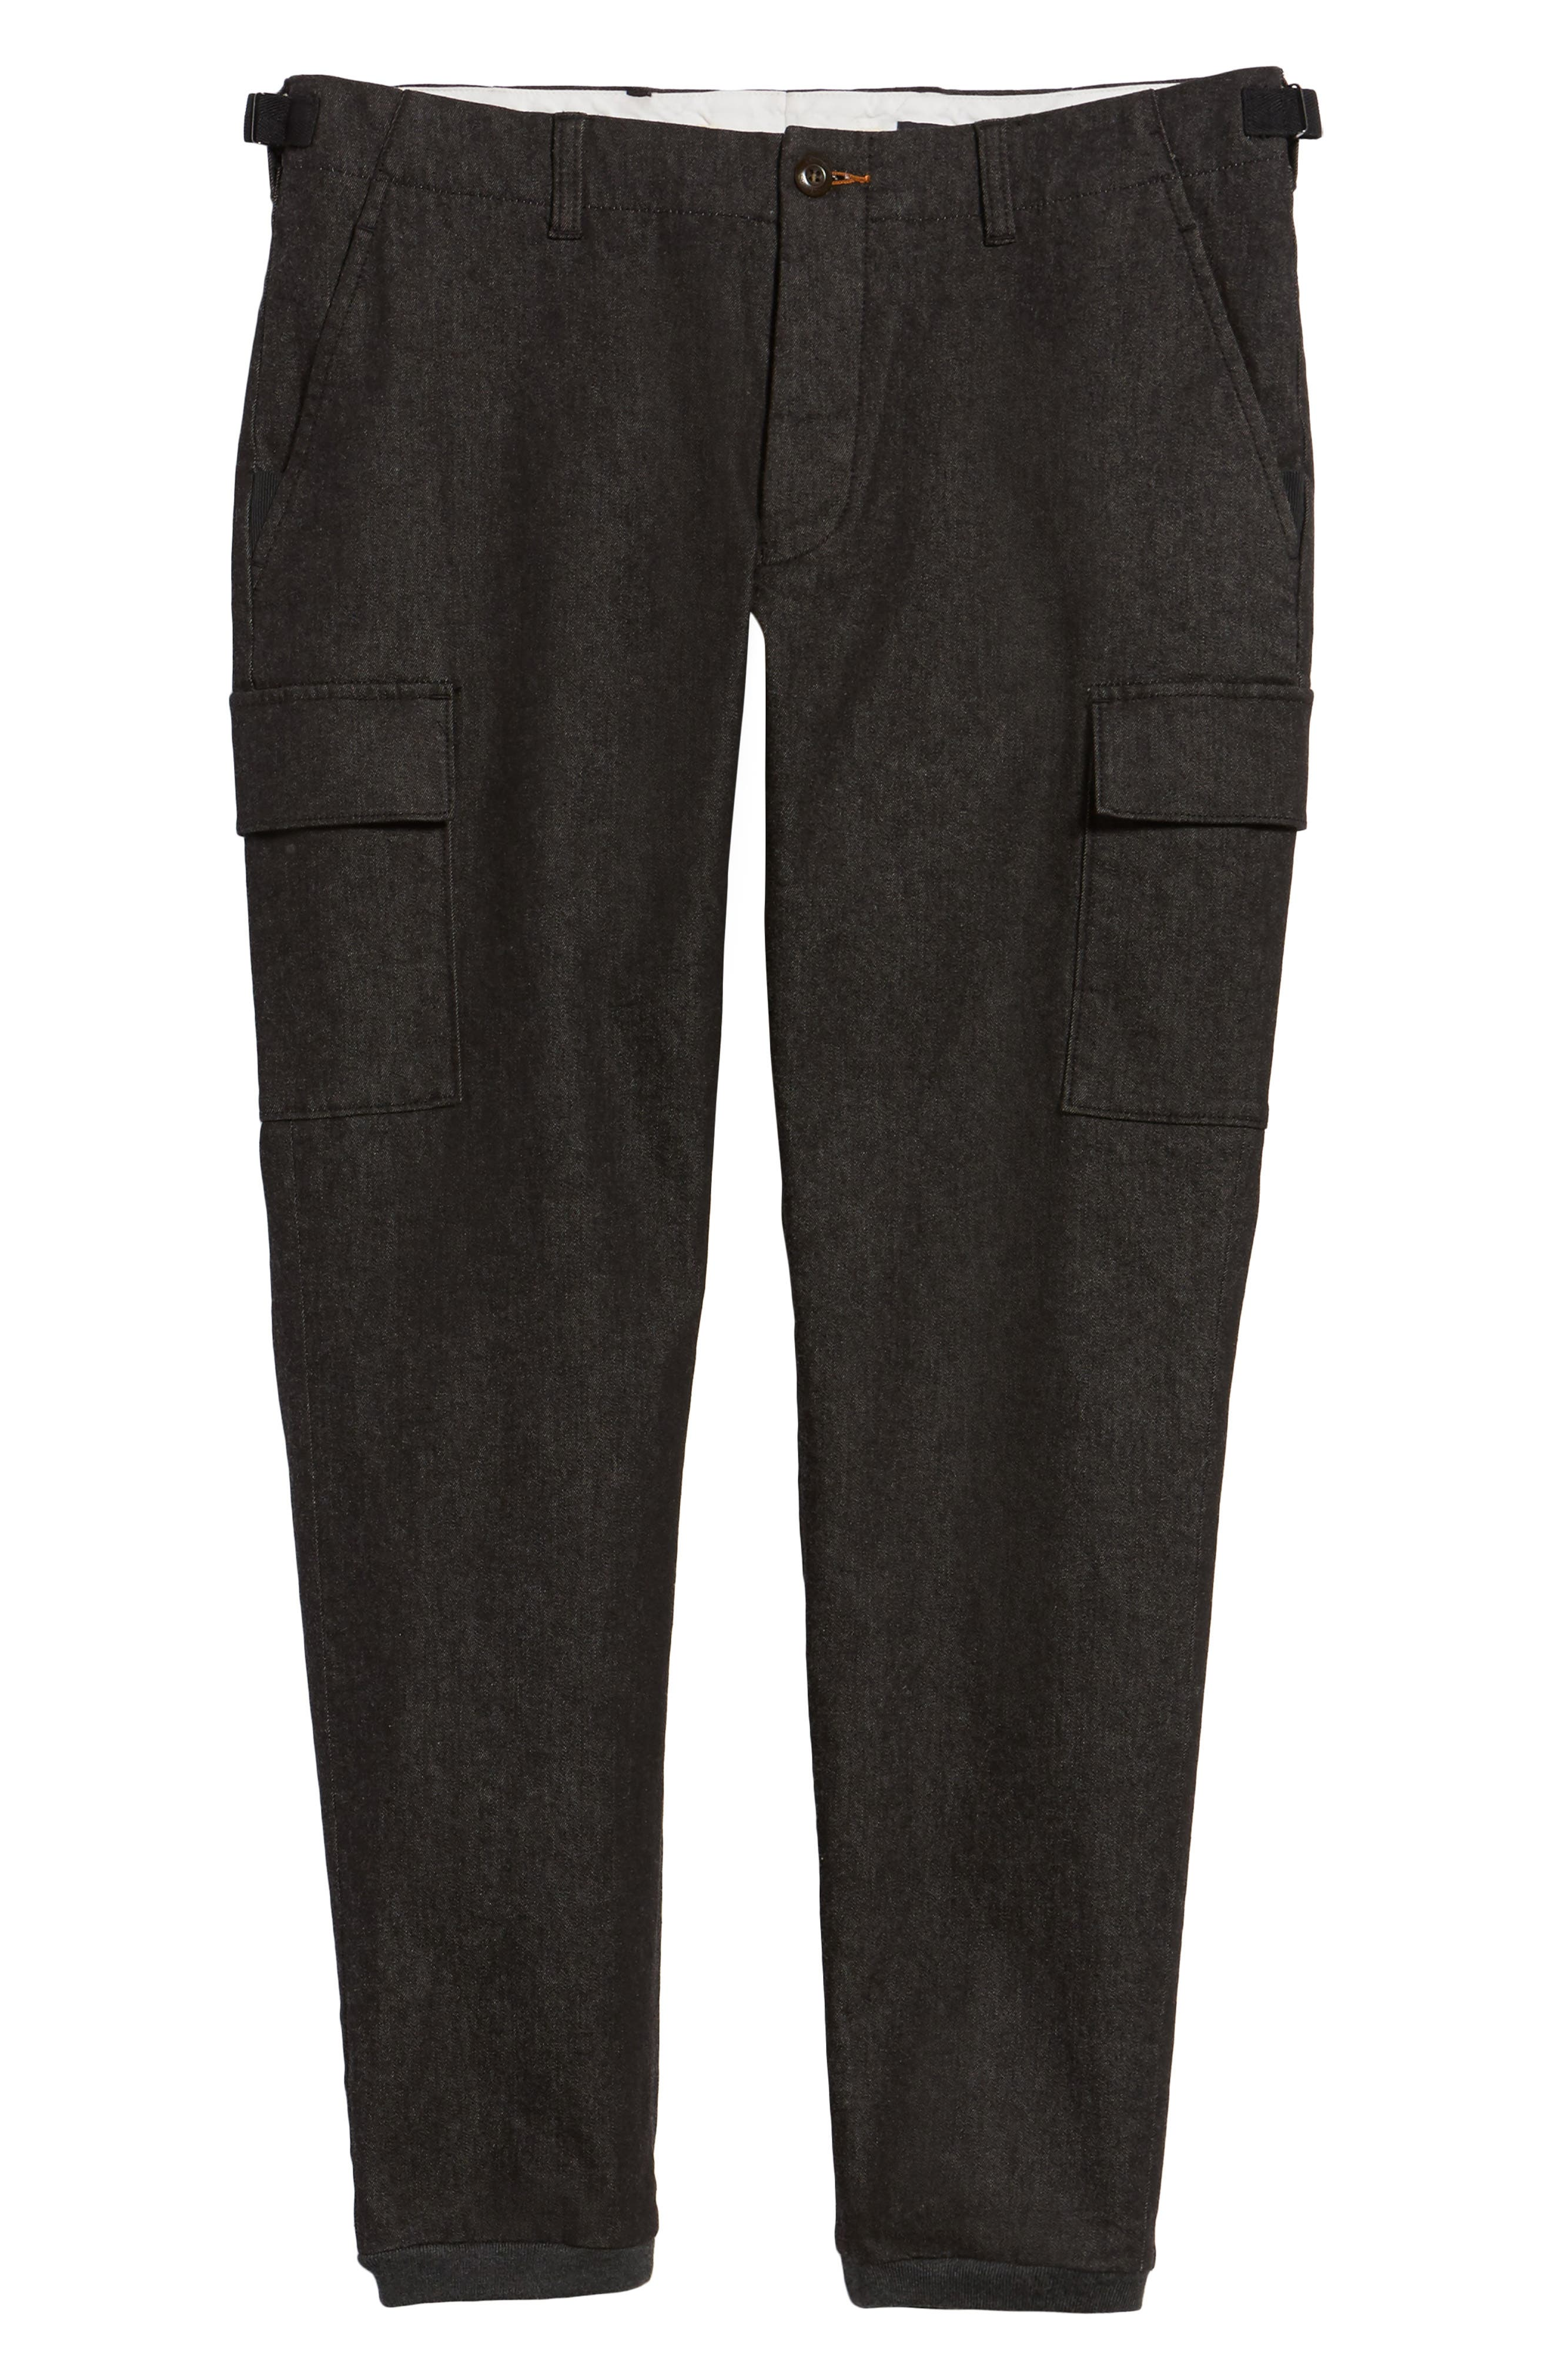 Brushed Stretch Twill Pants,                             Alternate thumbnail 6, color,